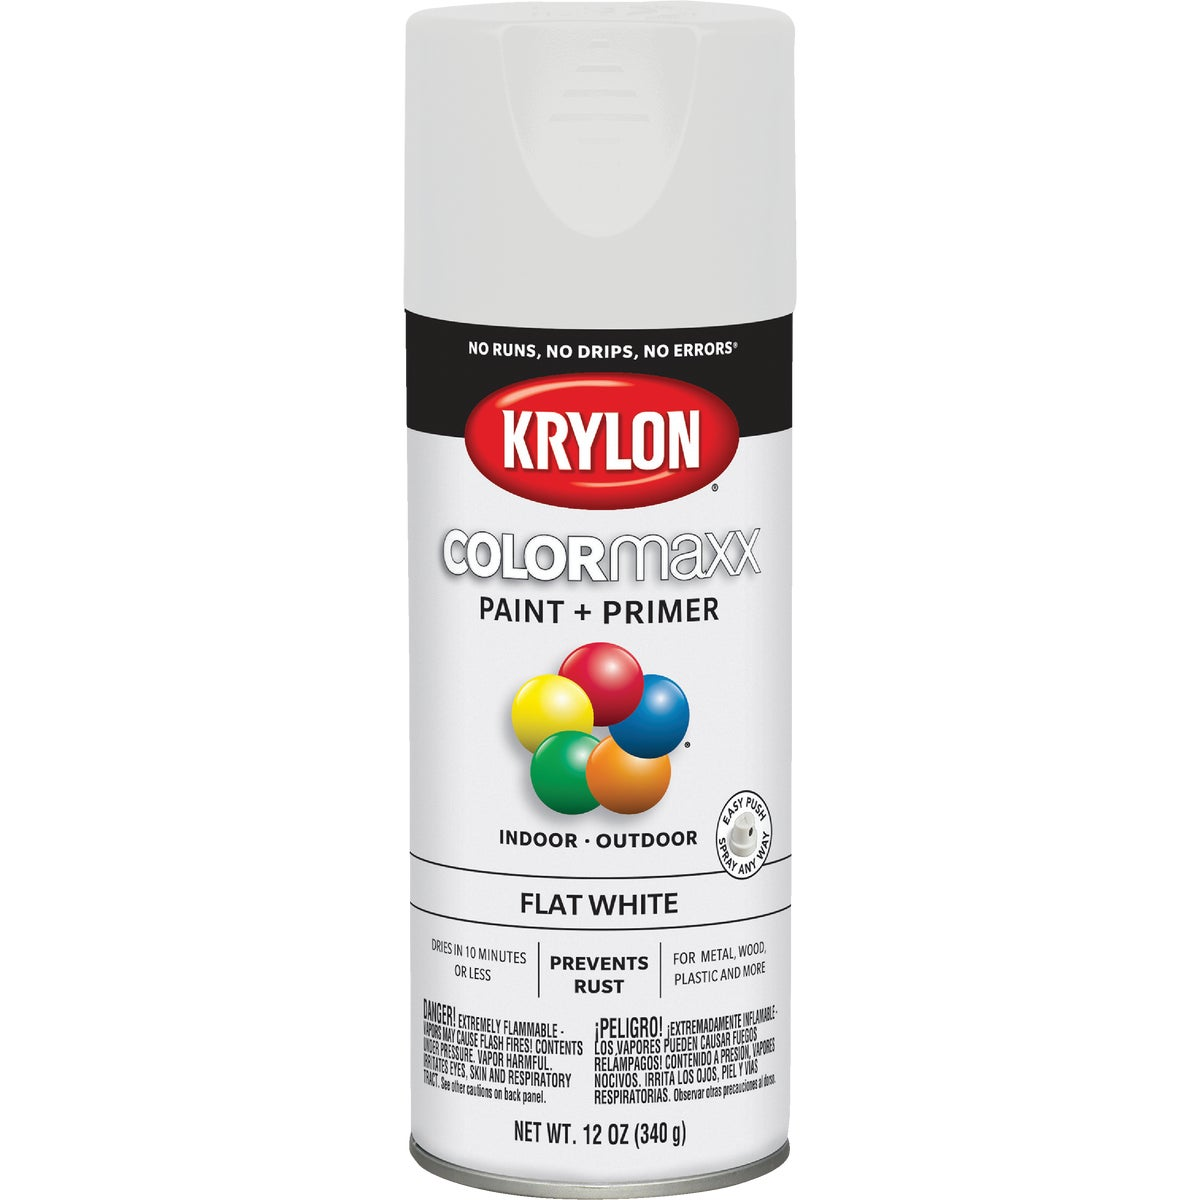 FLAT WHITE SPRAY PAINT - 51502 by Krylon/consumer Div